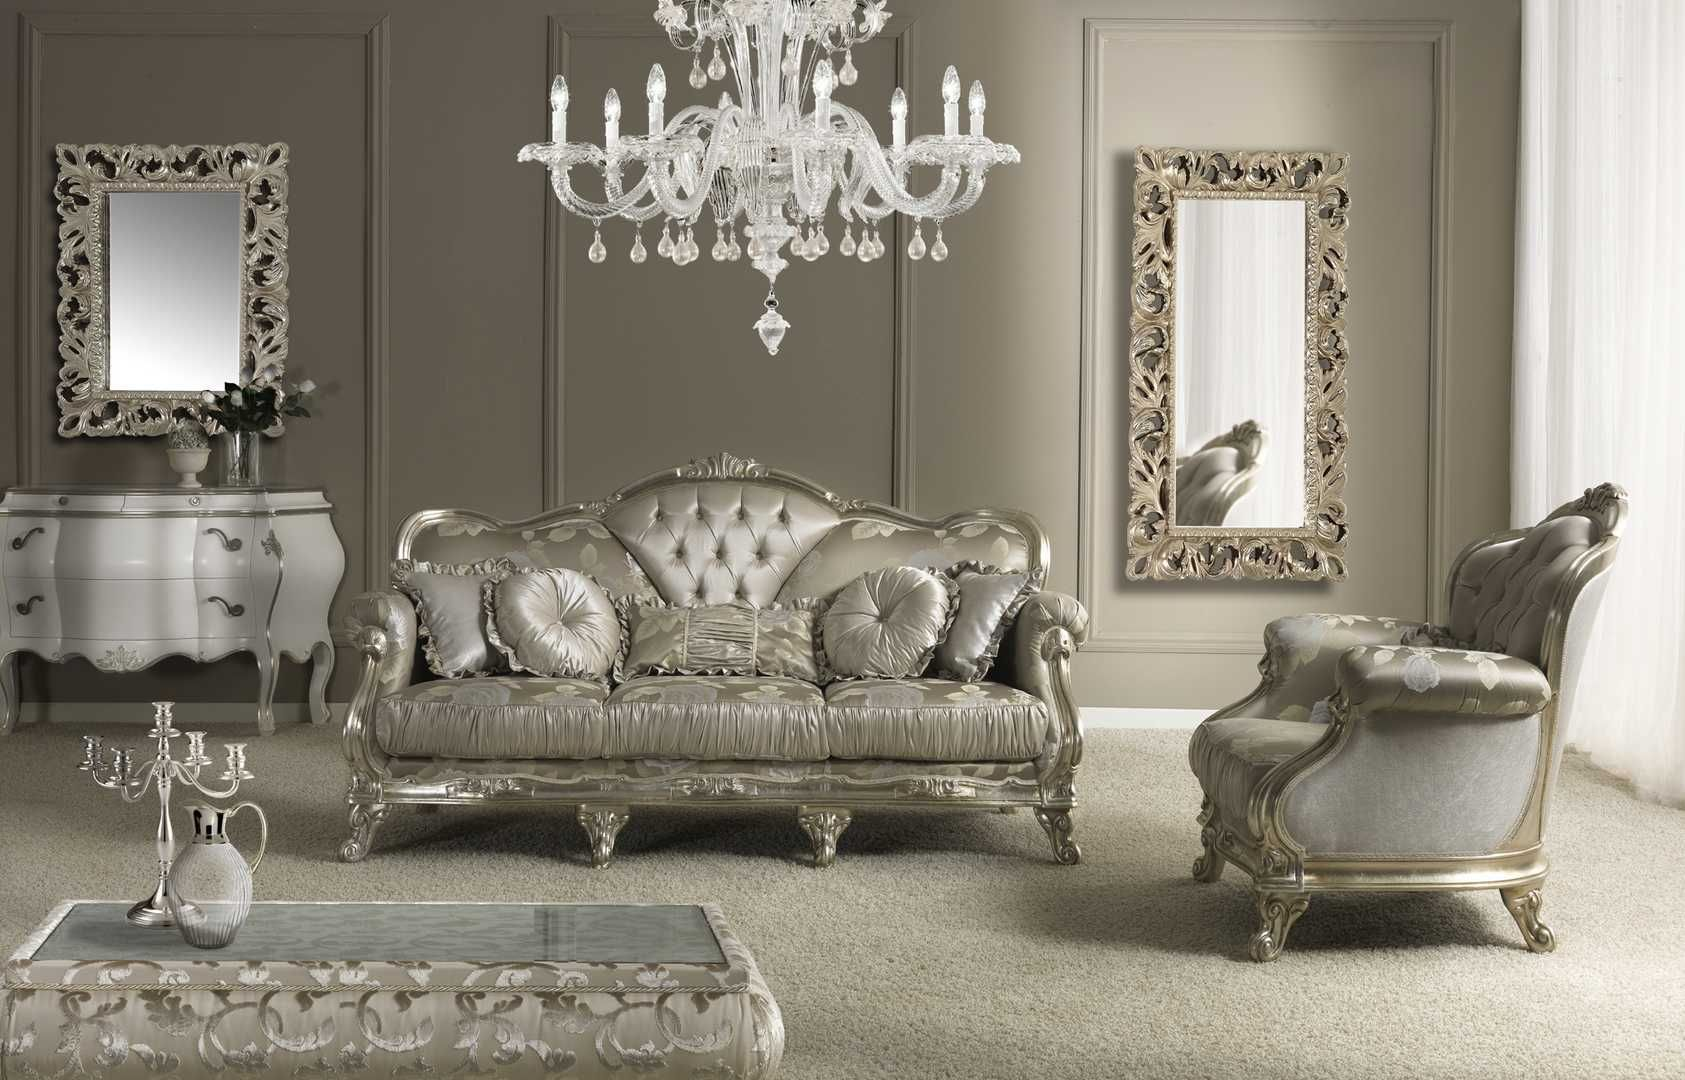 Italian Furniture Stores: Napoleone Luxury Furniture & Tabitha B&B·Italia